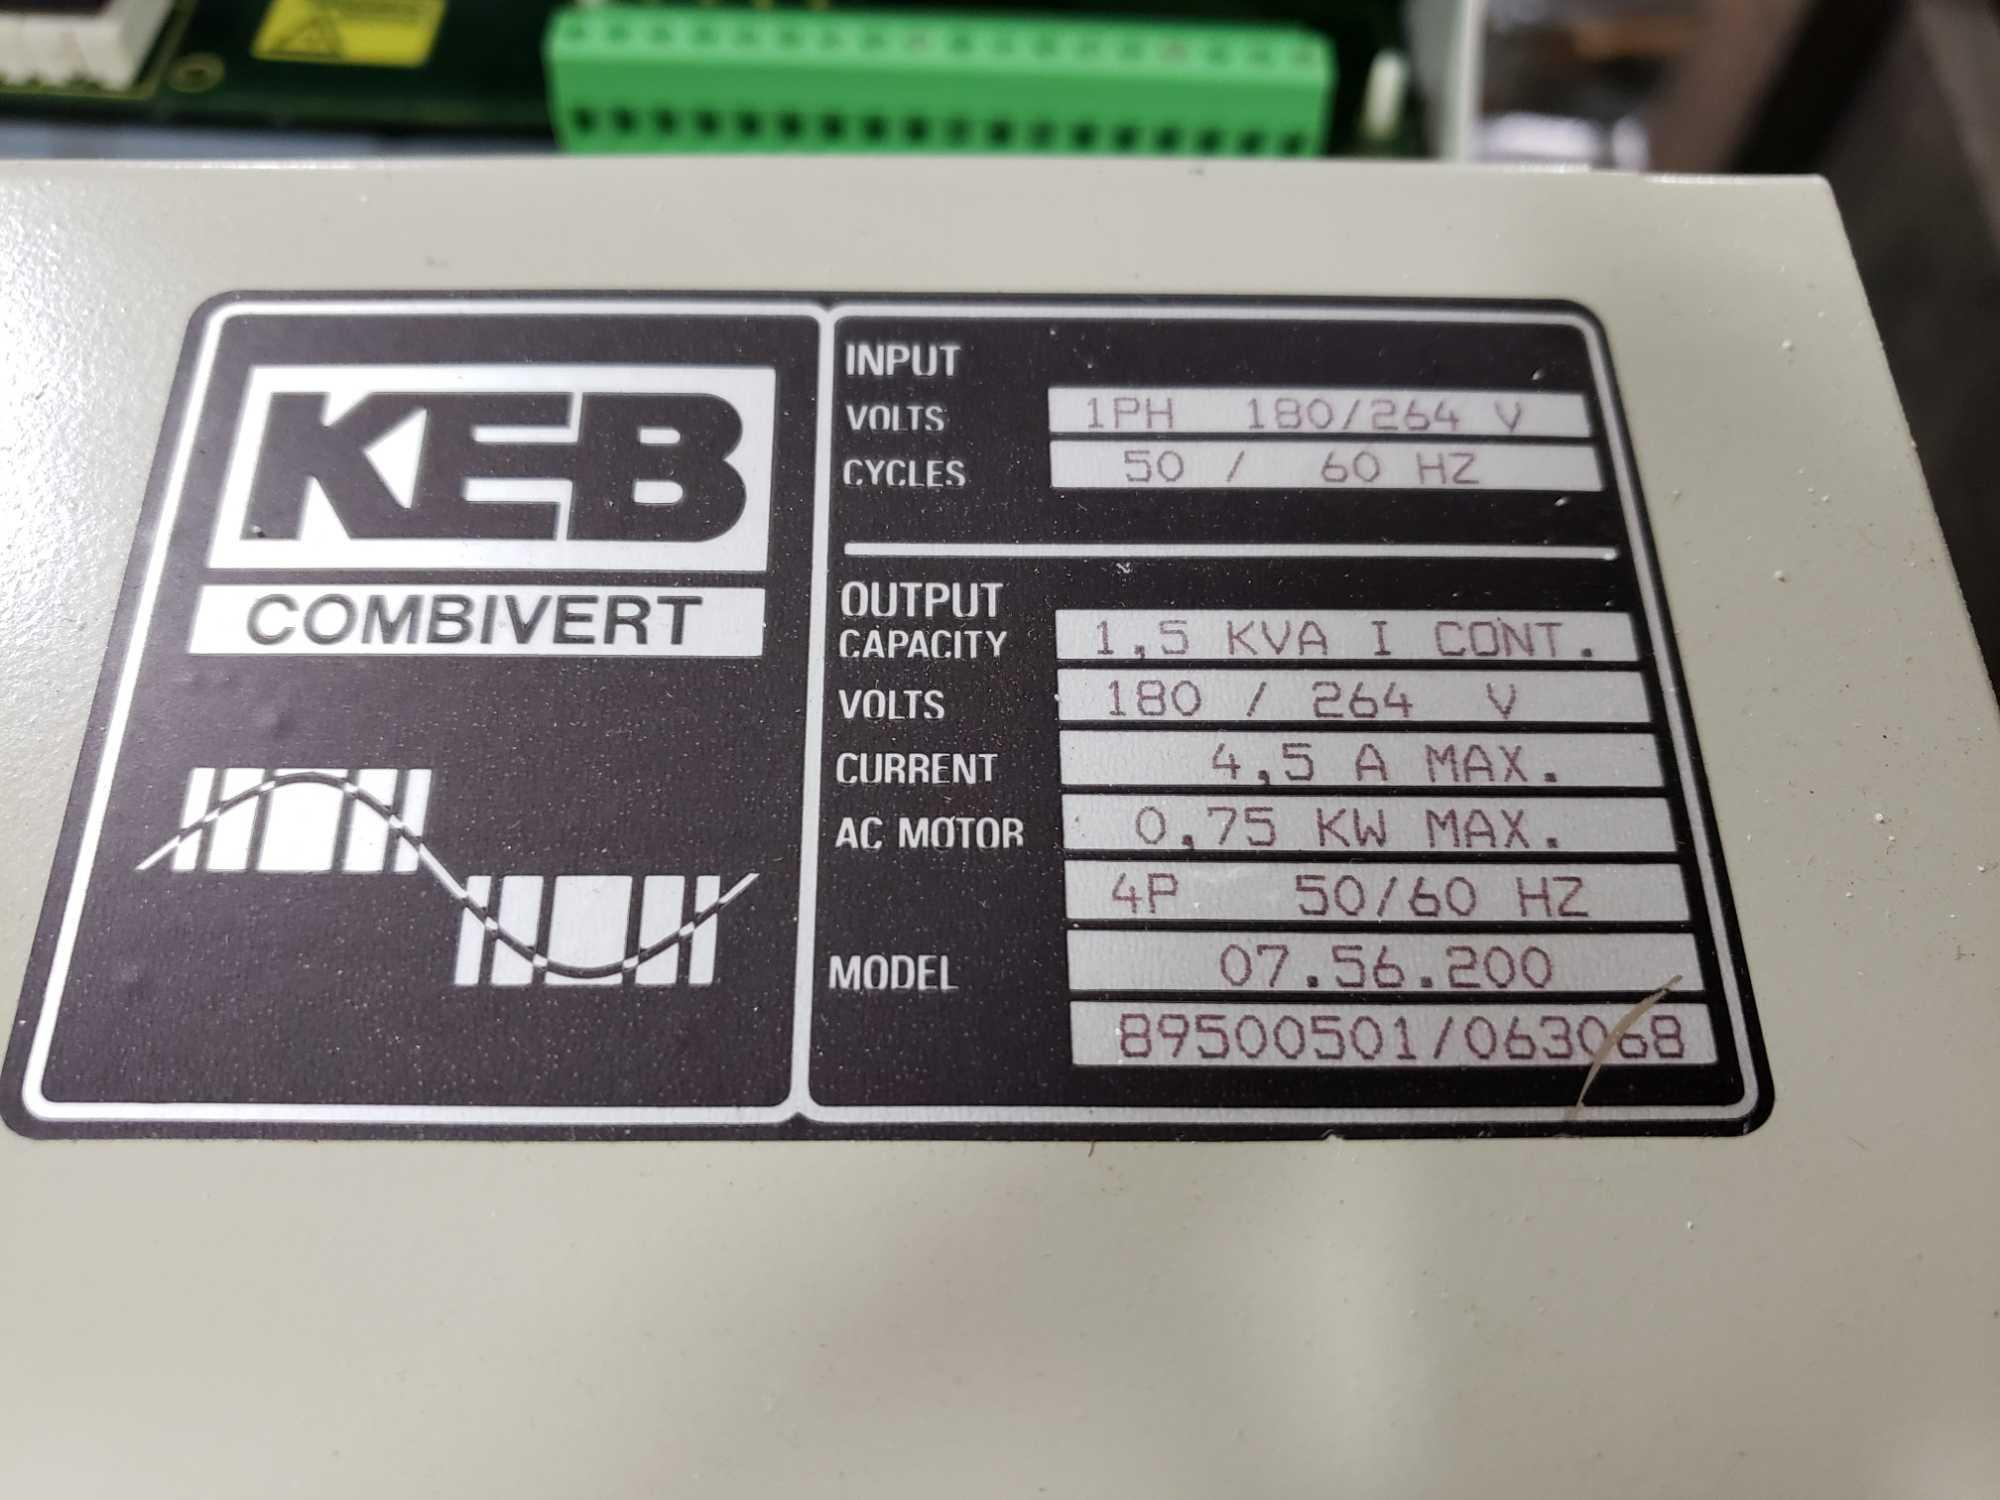 KEB Combivert drive. 180-264v input, 180-264v AC output. New in box. - Image 2 of 3